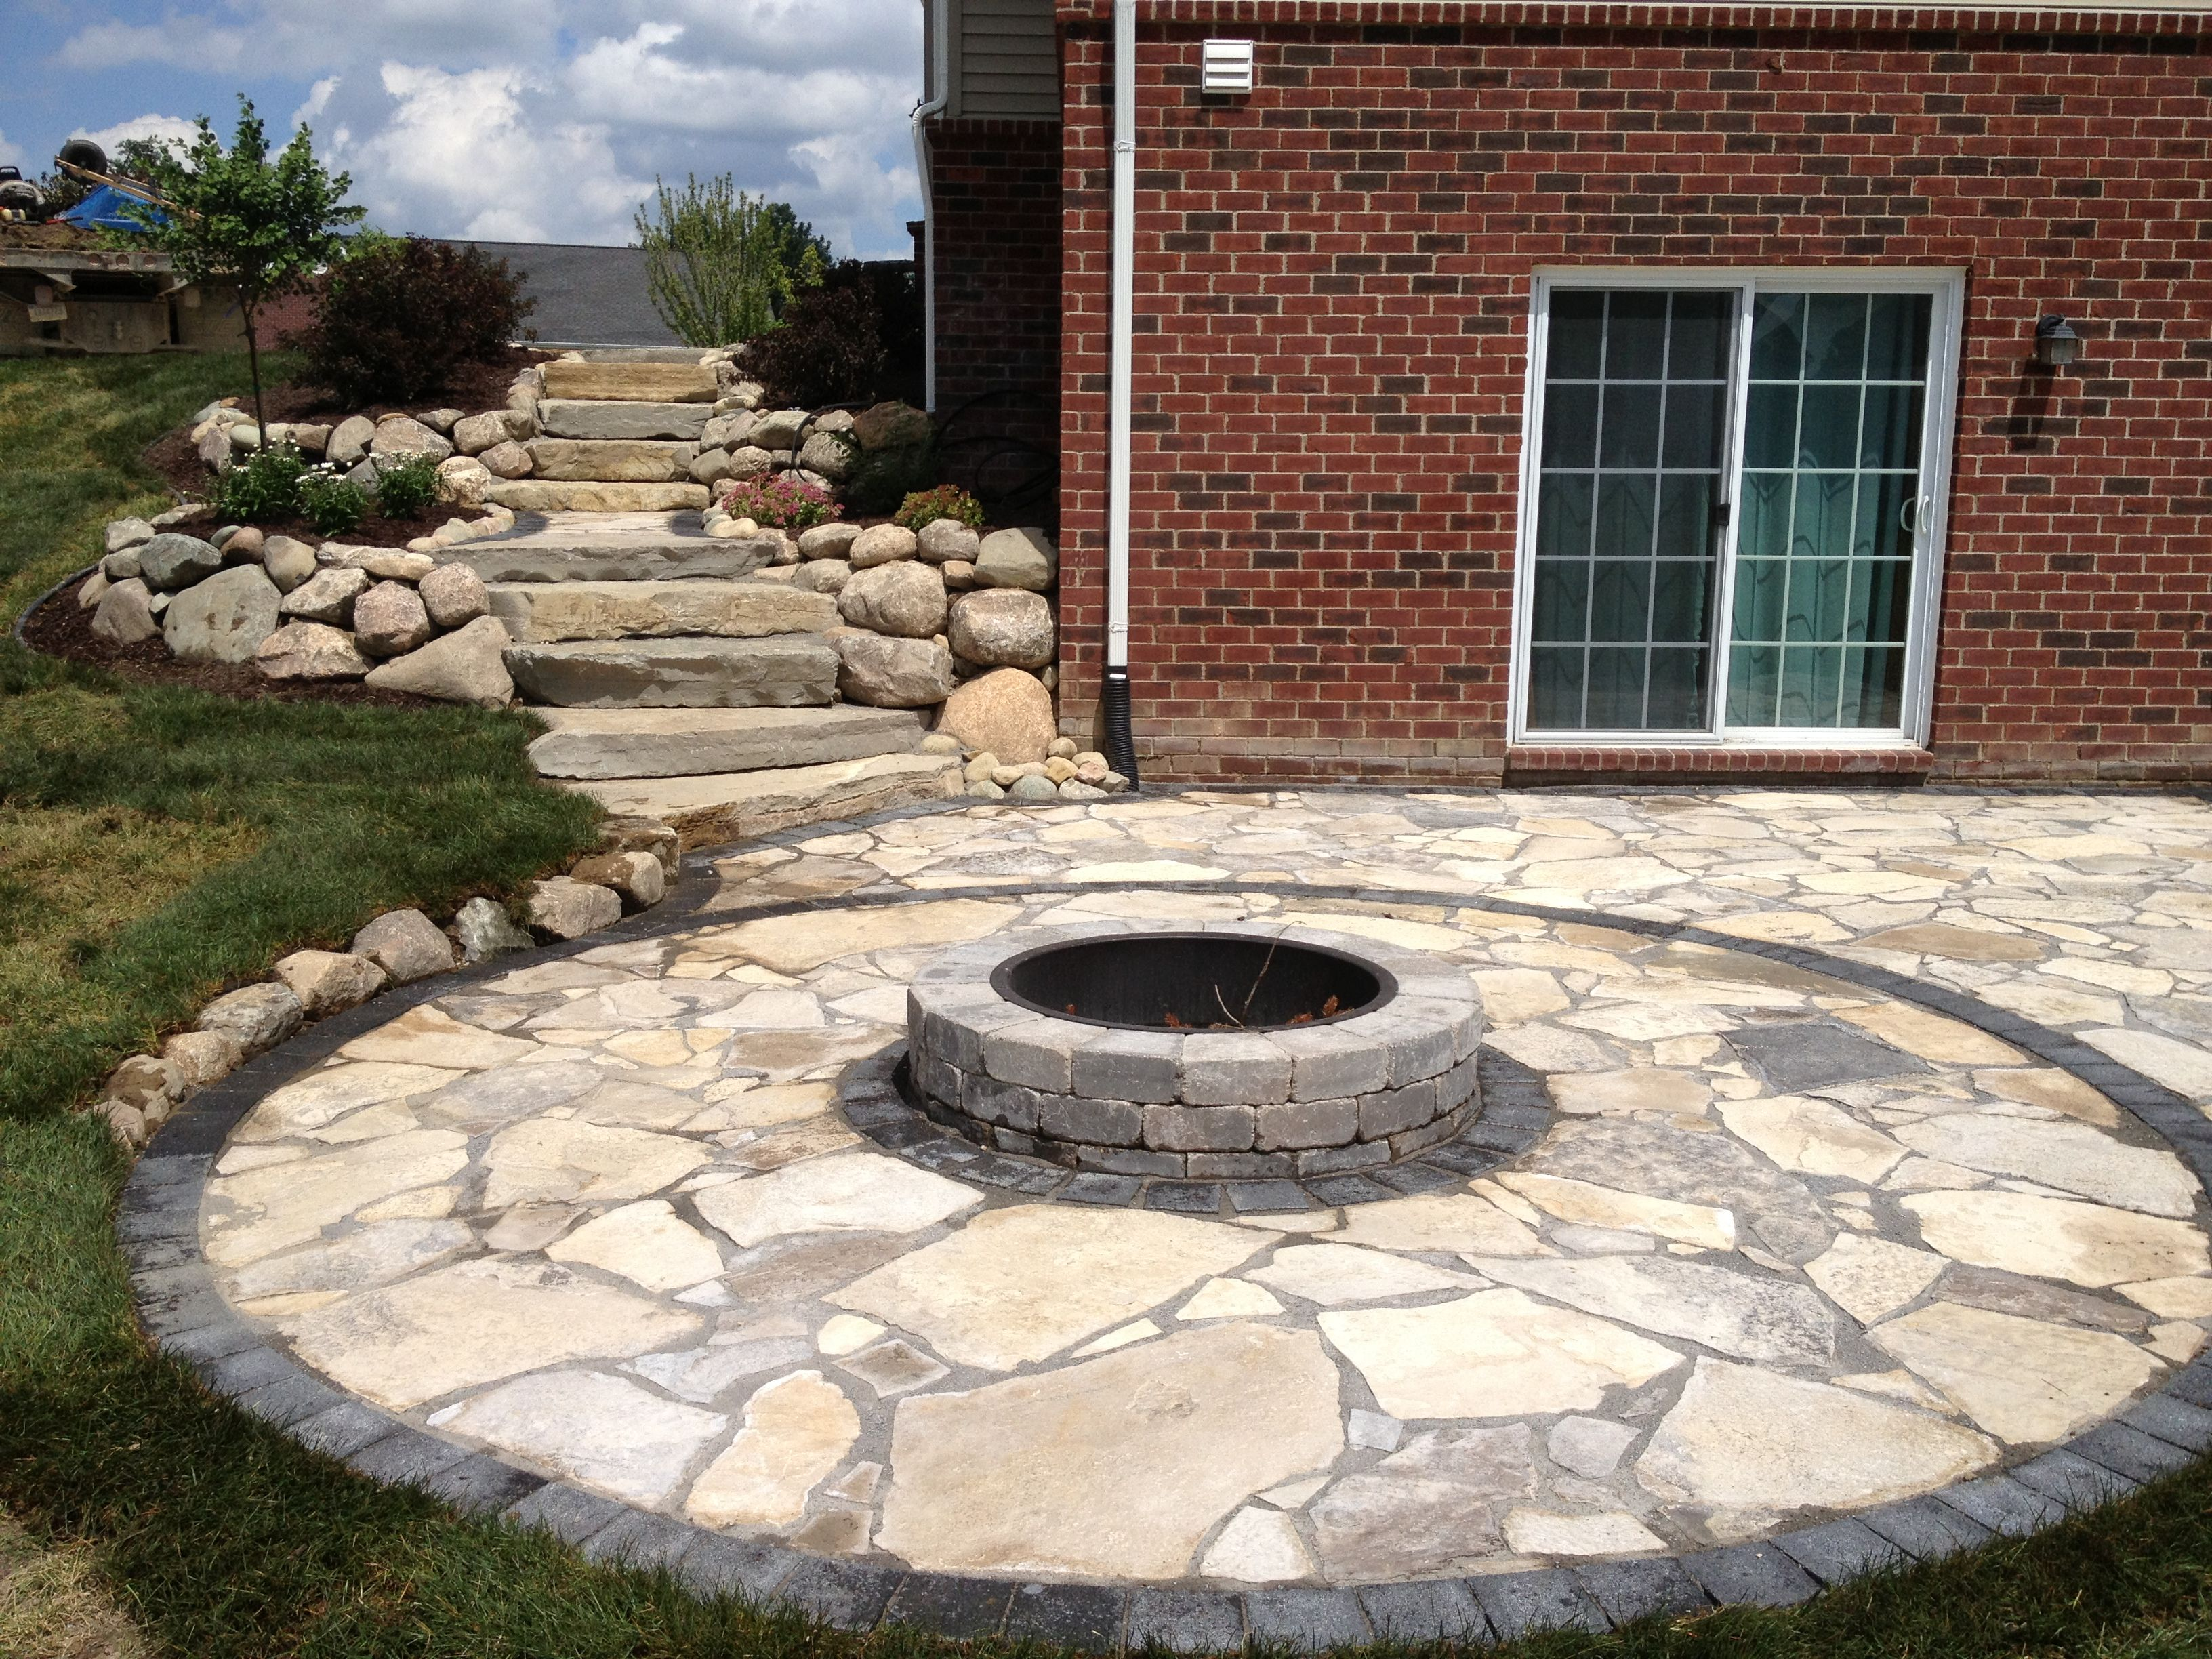 Canadian Flagstone Patio With Brick Paver Accent Brick And Unilock Fire Pit All Natural Landscapes Flagstone Patio Patio Landscaping Fire Pit Backyard